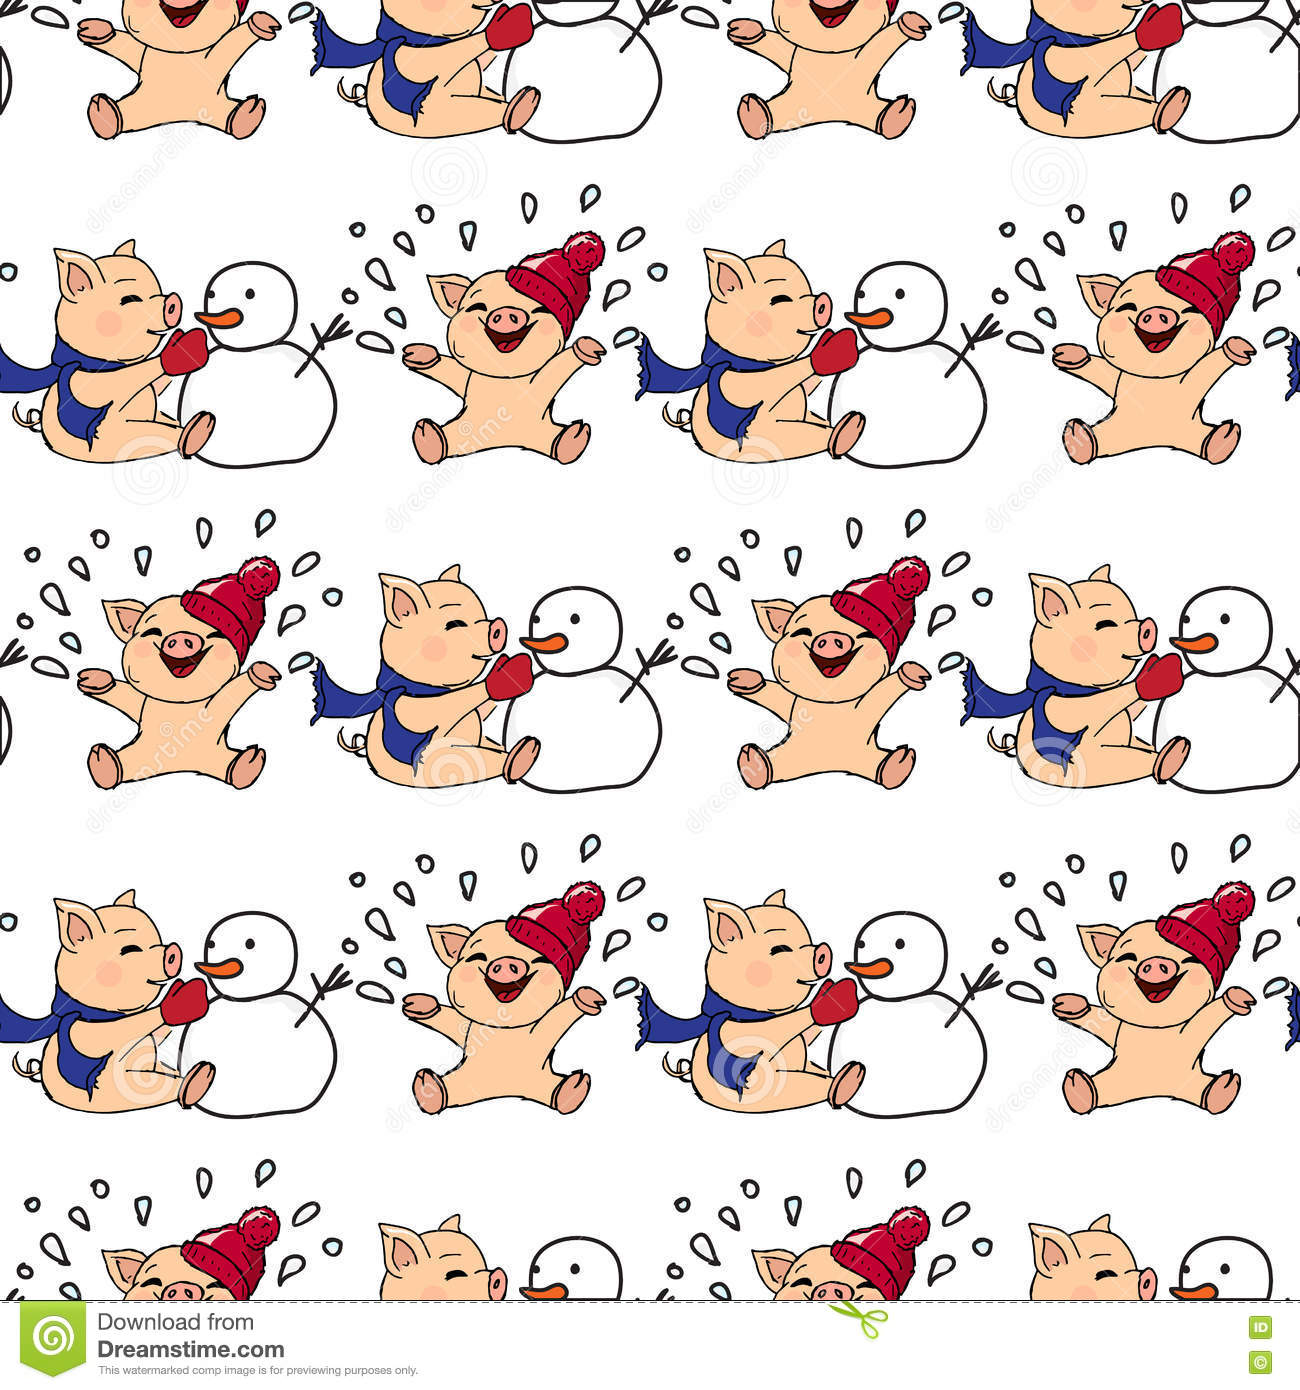 Hand-drawn illustrations. New Year card. Winter card with pigs. Children playing with snow. Piglets and snowman. Seamless